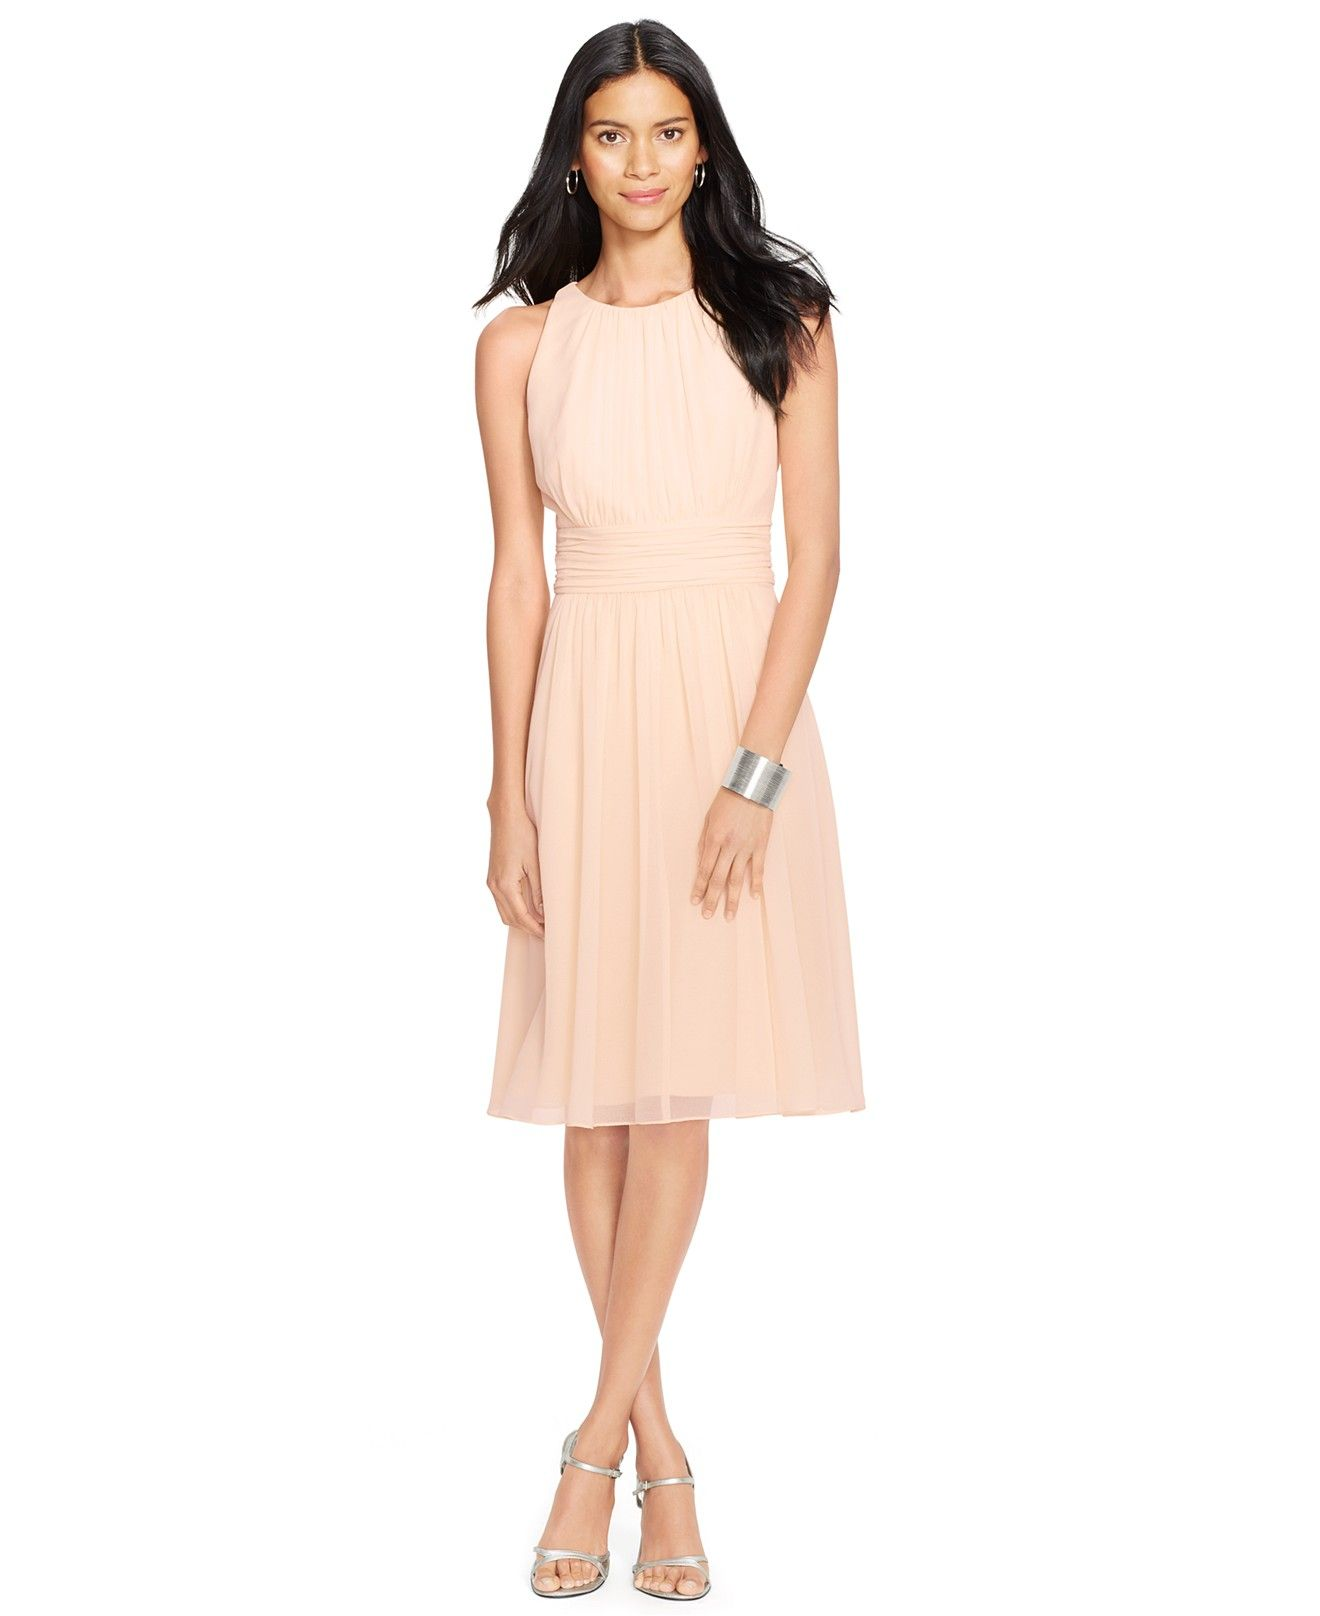 Lauren ralph lauren ruched sleeveless dress dresses women lauren ralph lauren ruched sleeveless dress dresses women macys ombrellifo Images